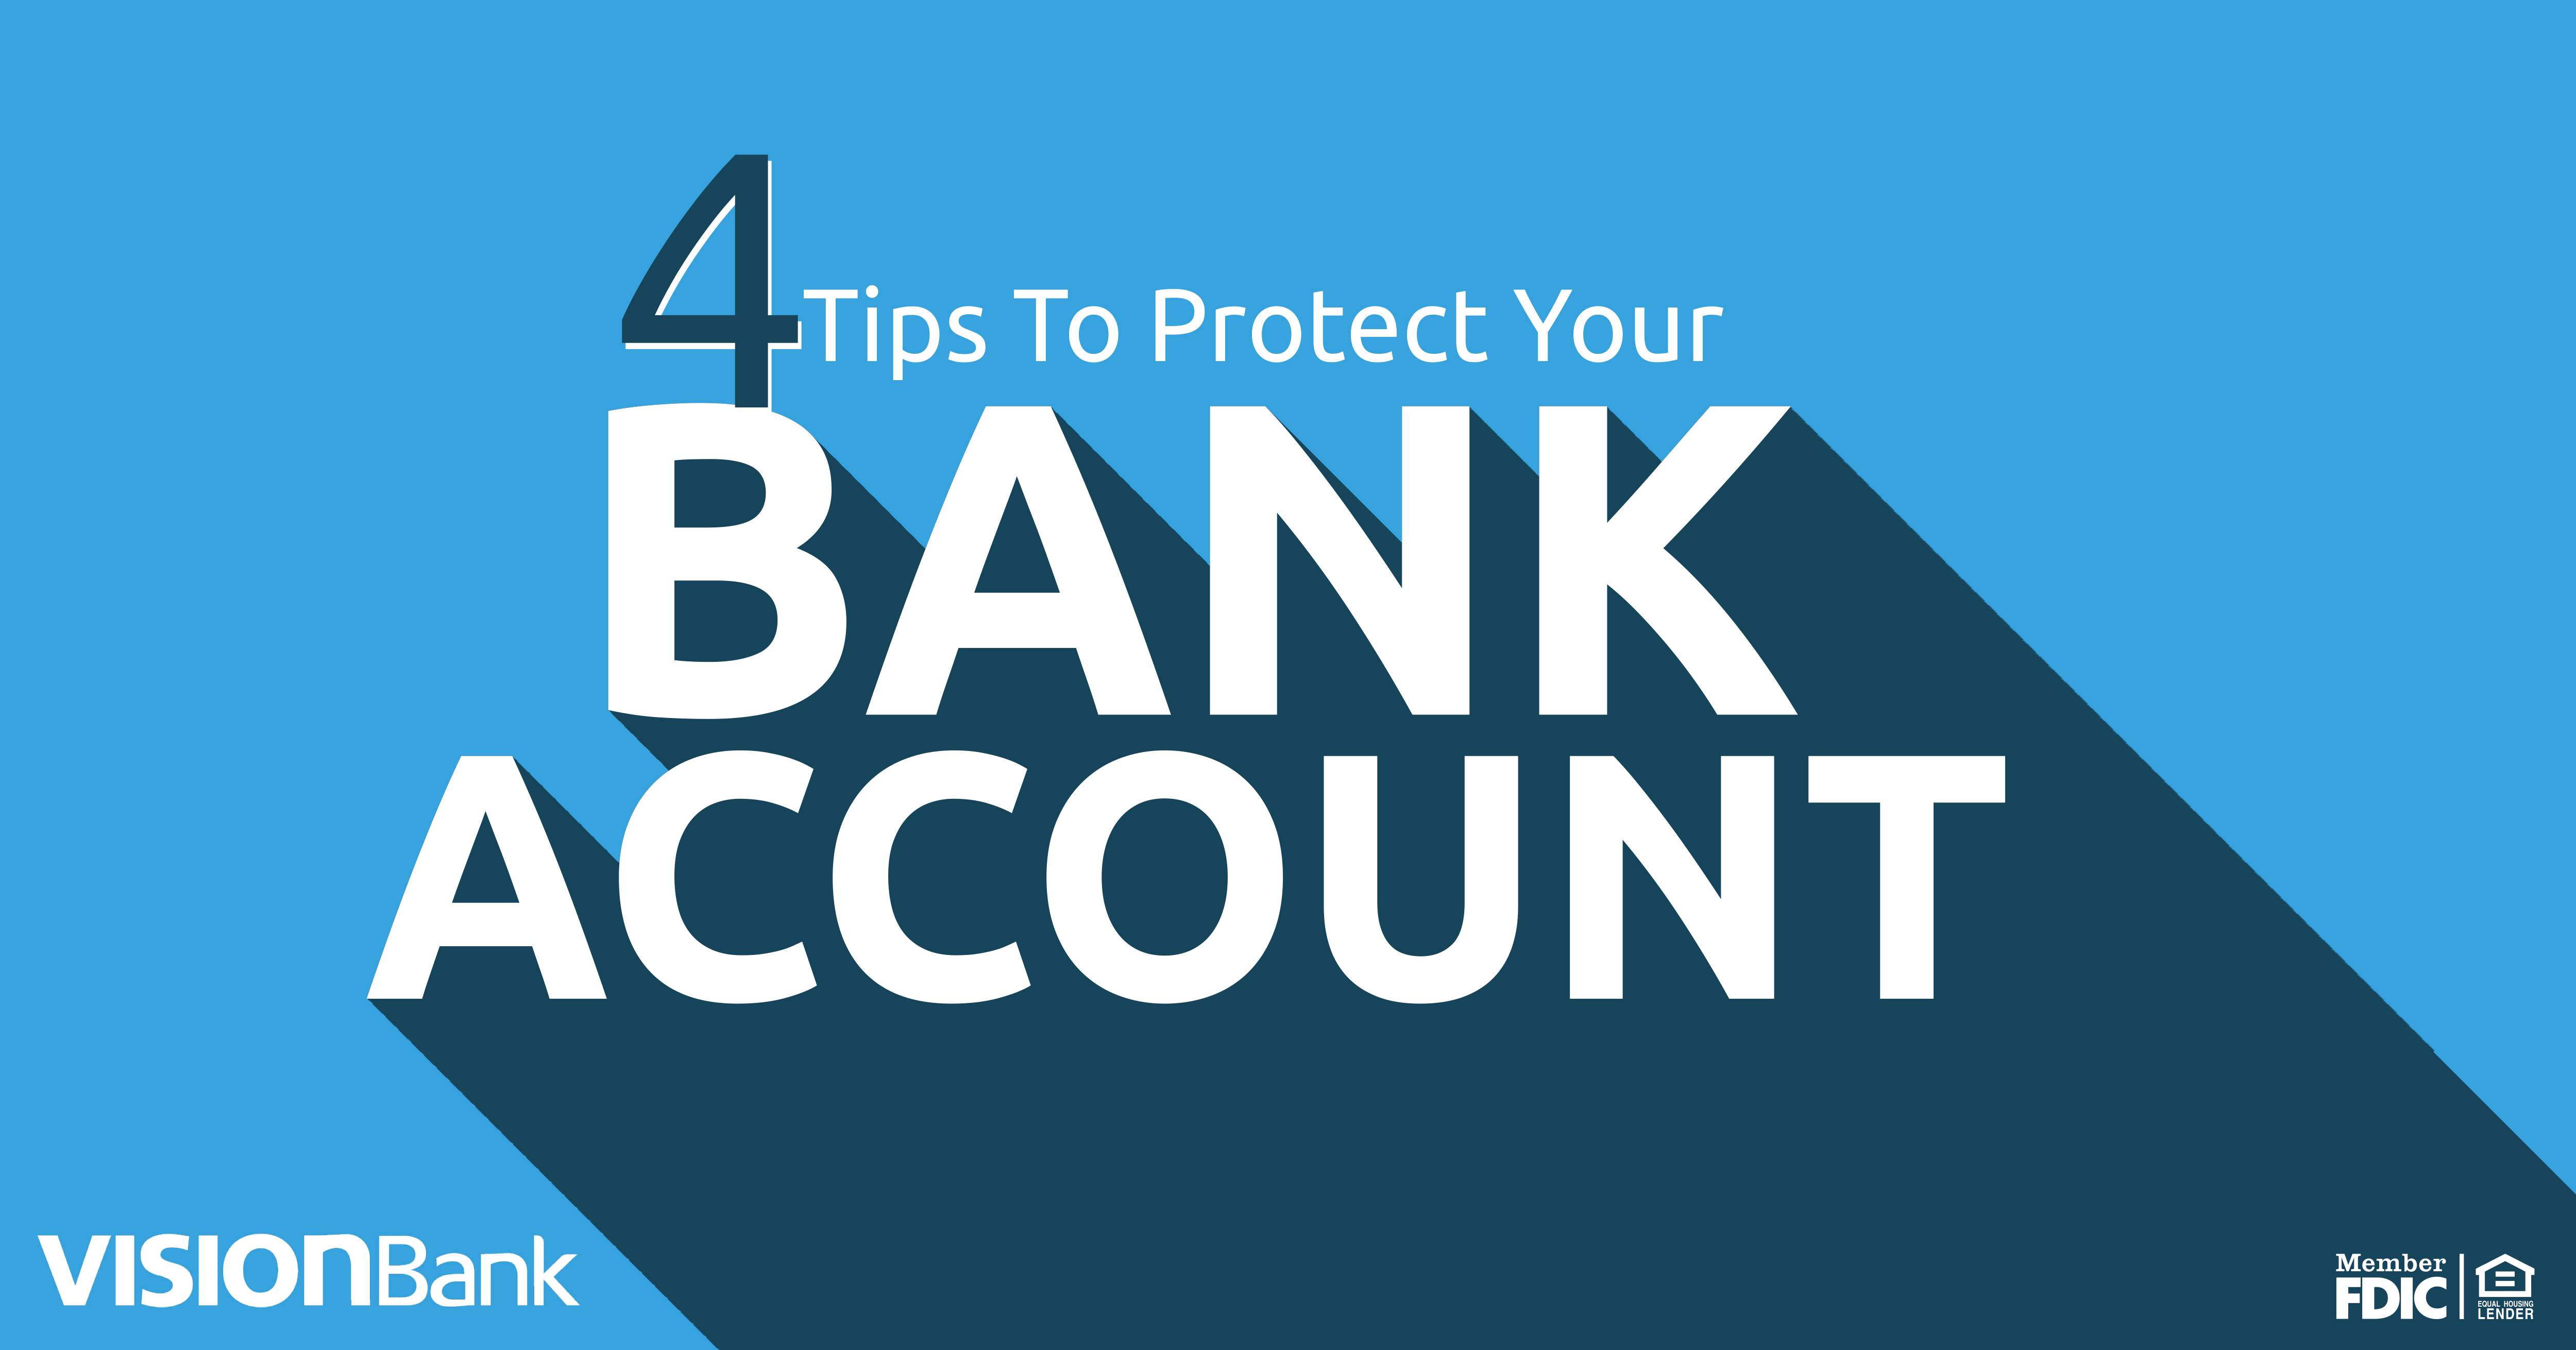 4 TIPS TO PROTECT YOUR ACCOUNT